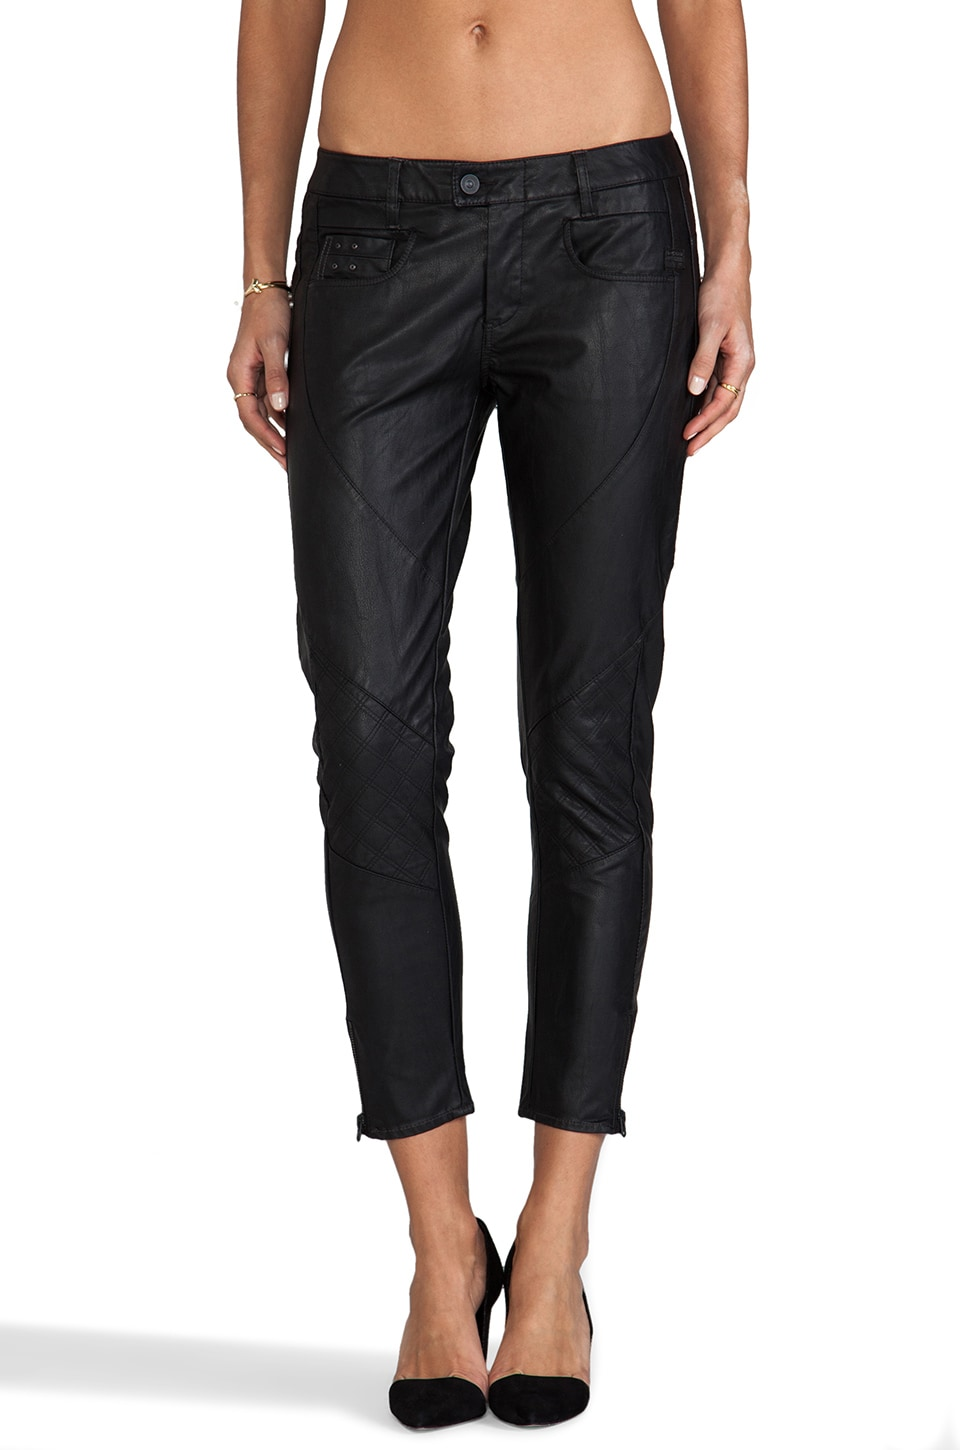 G-Star Raw Radar Skinny Ankle Pant in Black